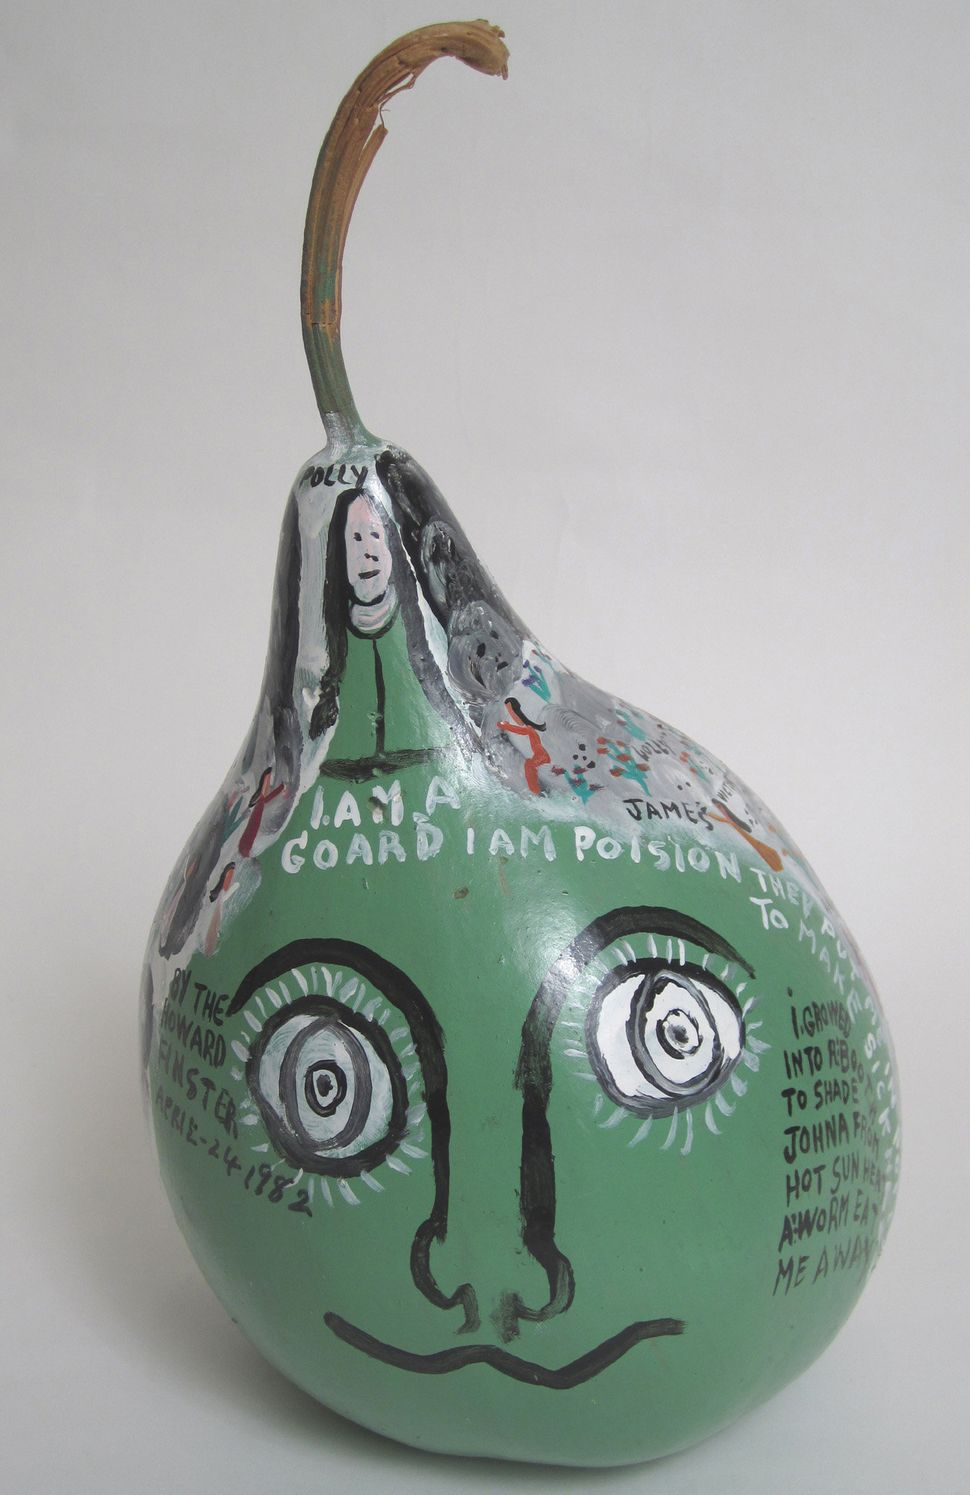 Howard Finster, I AM A Gourd, 1982. 12 x 7 inches diameter Courtesy The Ames Gallery